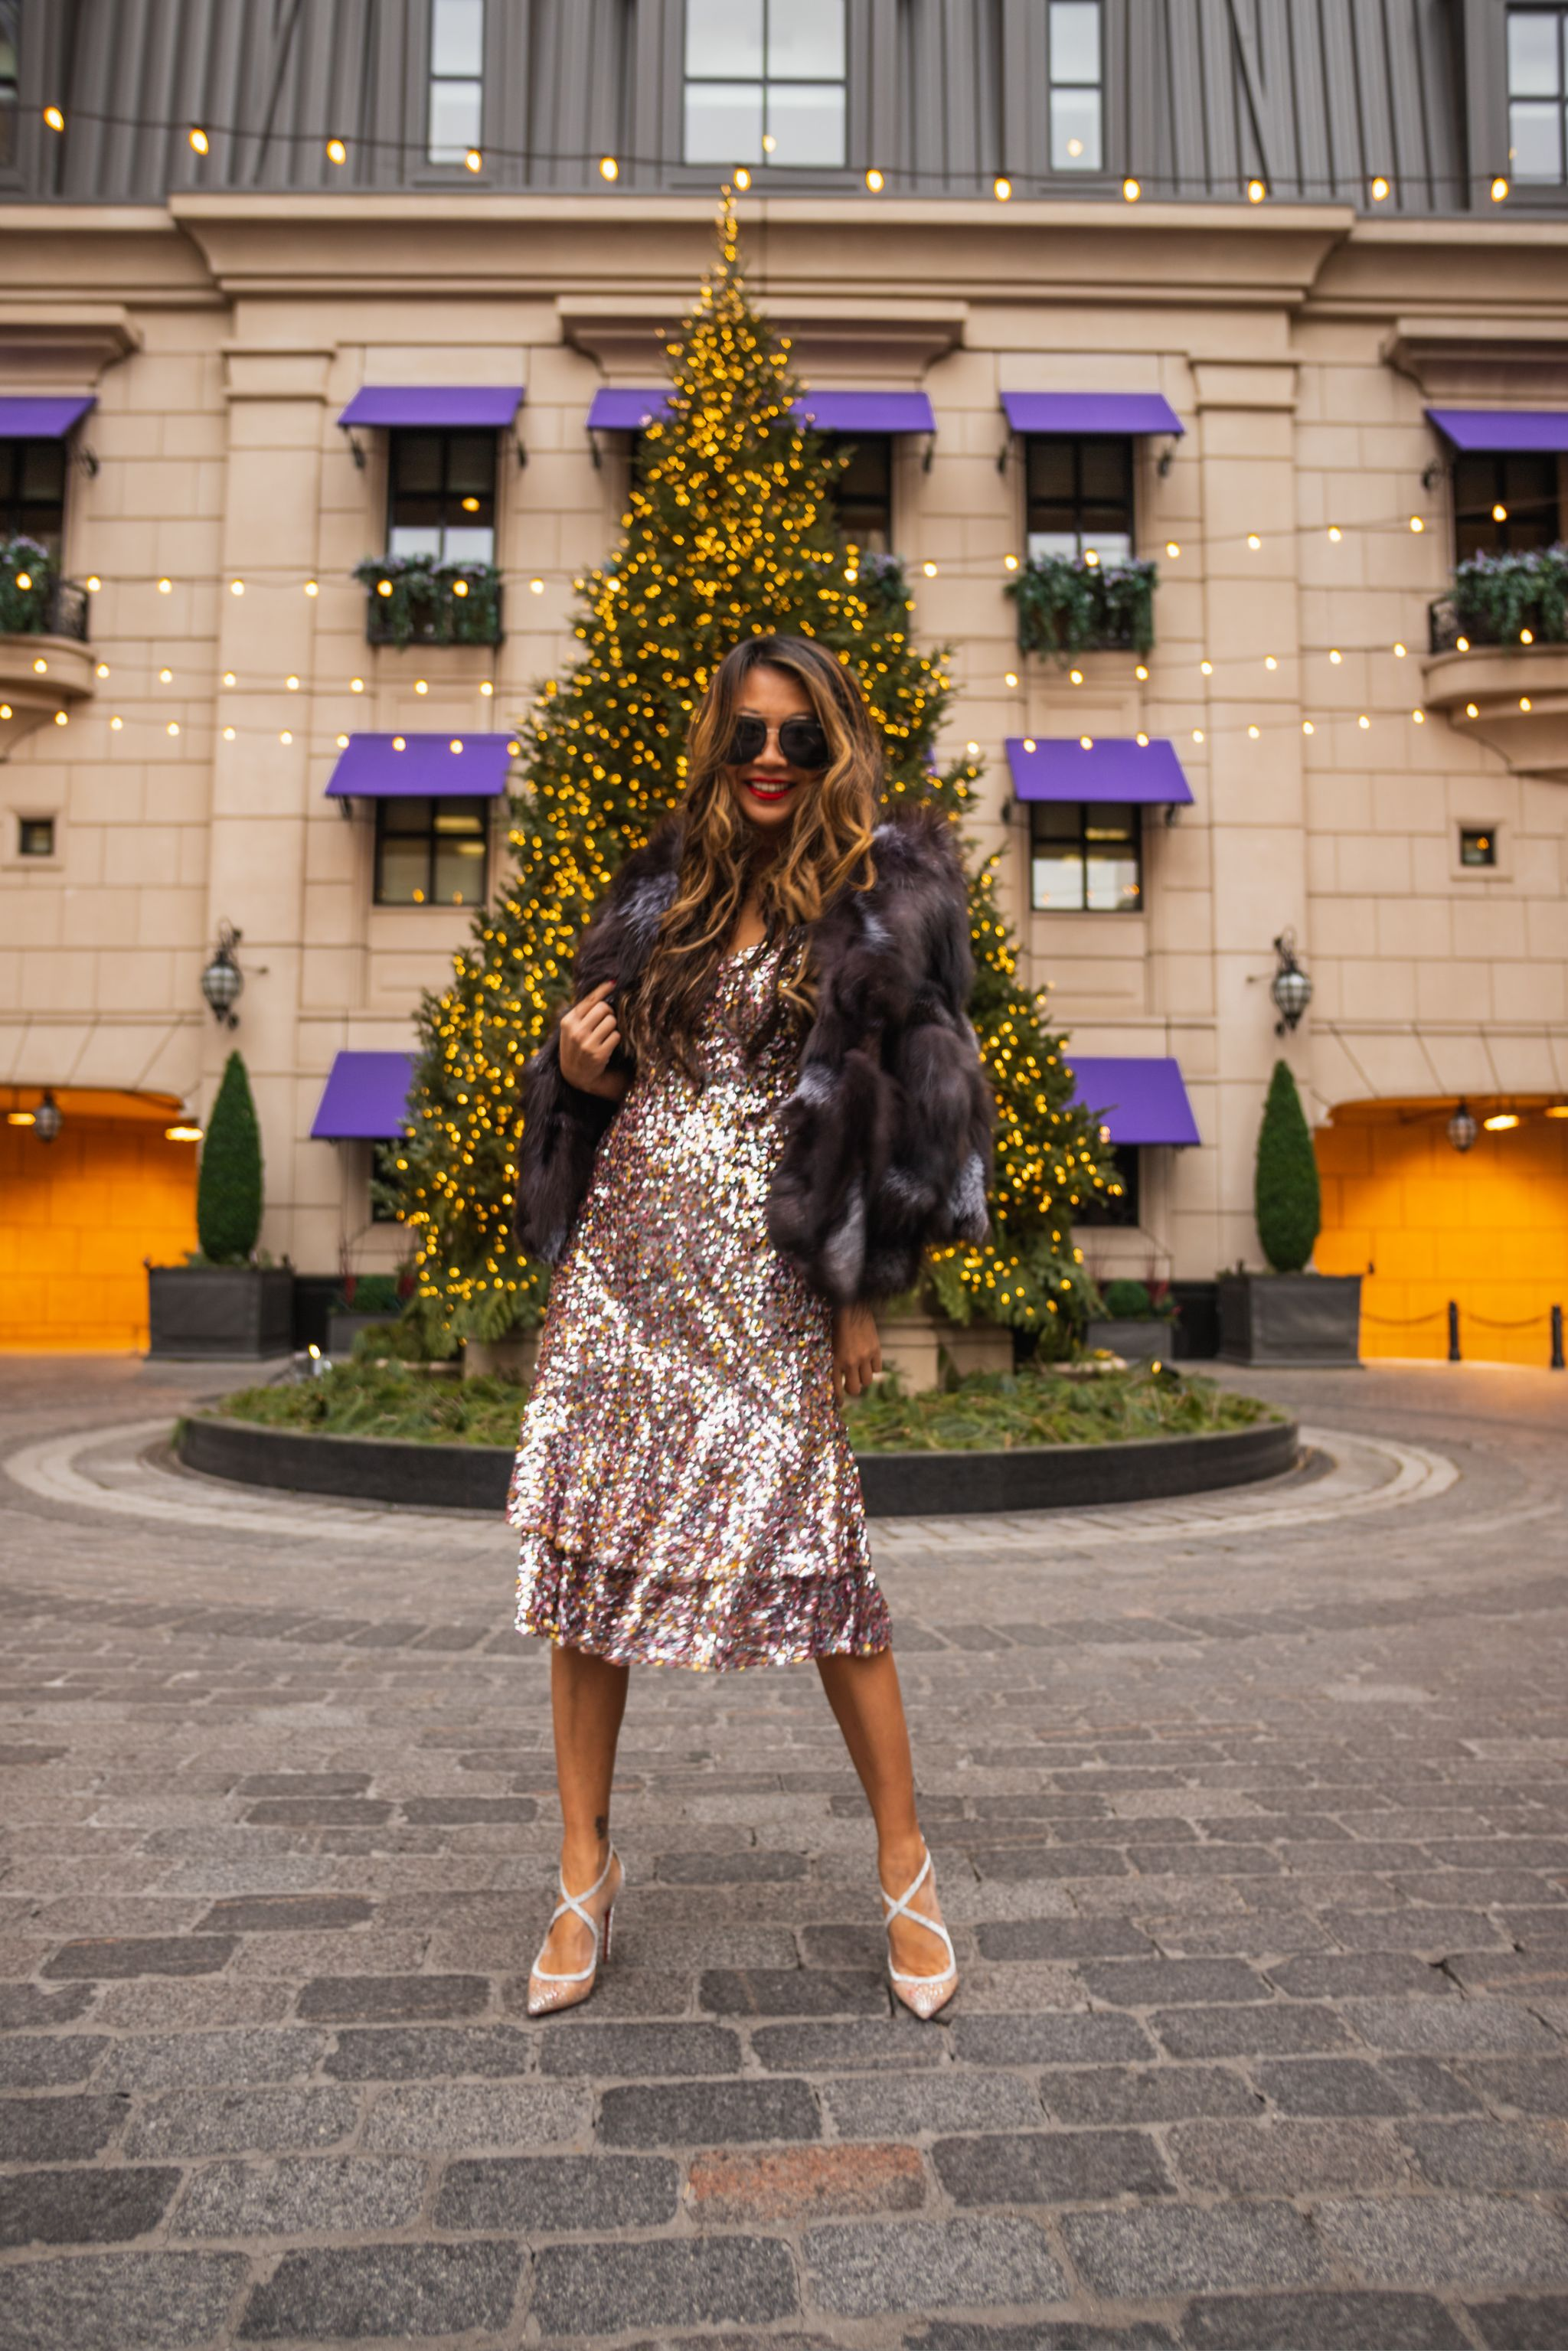 Nordstrom sequin dress, best sequin dress for a steal, new year's eve dress, chicago sequin dress, chicago fashion blogger, style blogger, Jennifer Worman, Nordstrom midi sequin dress